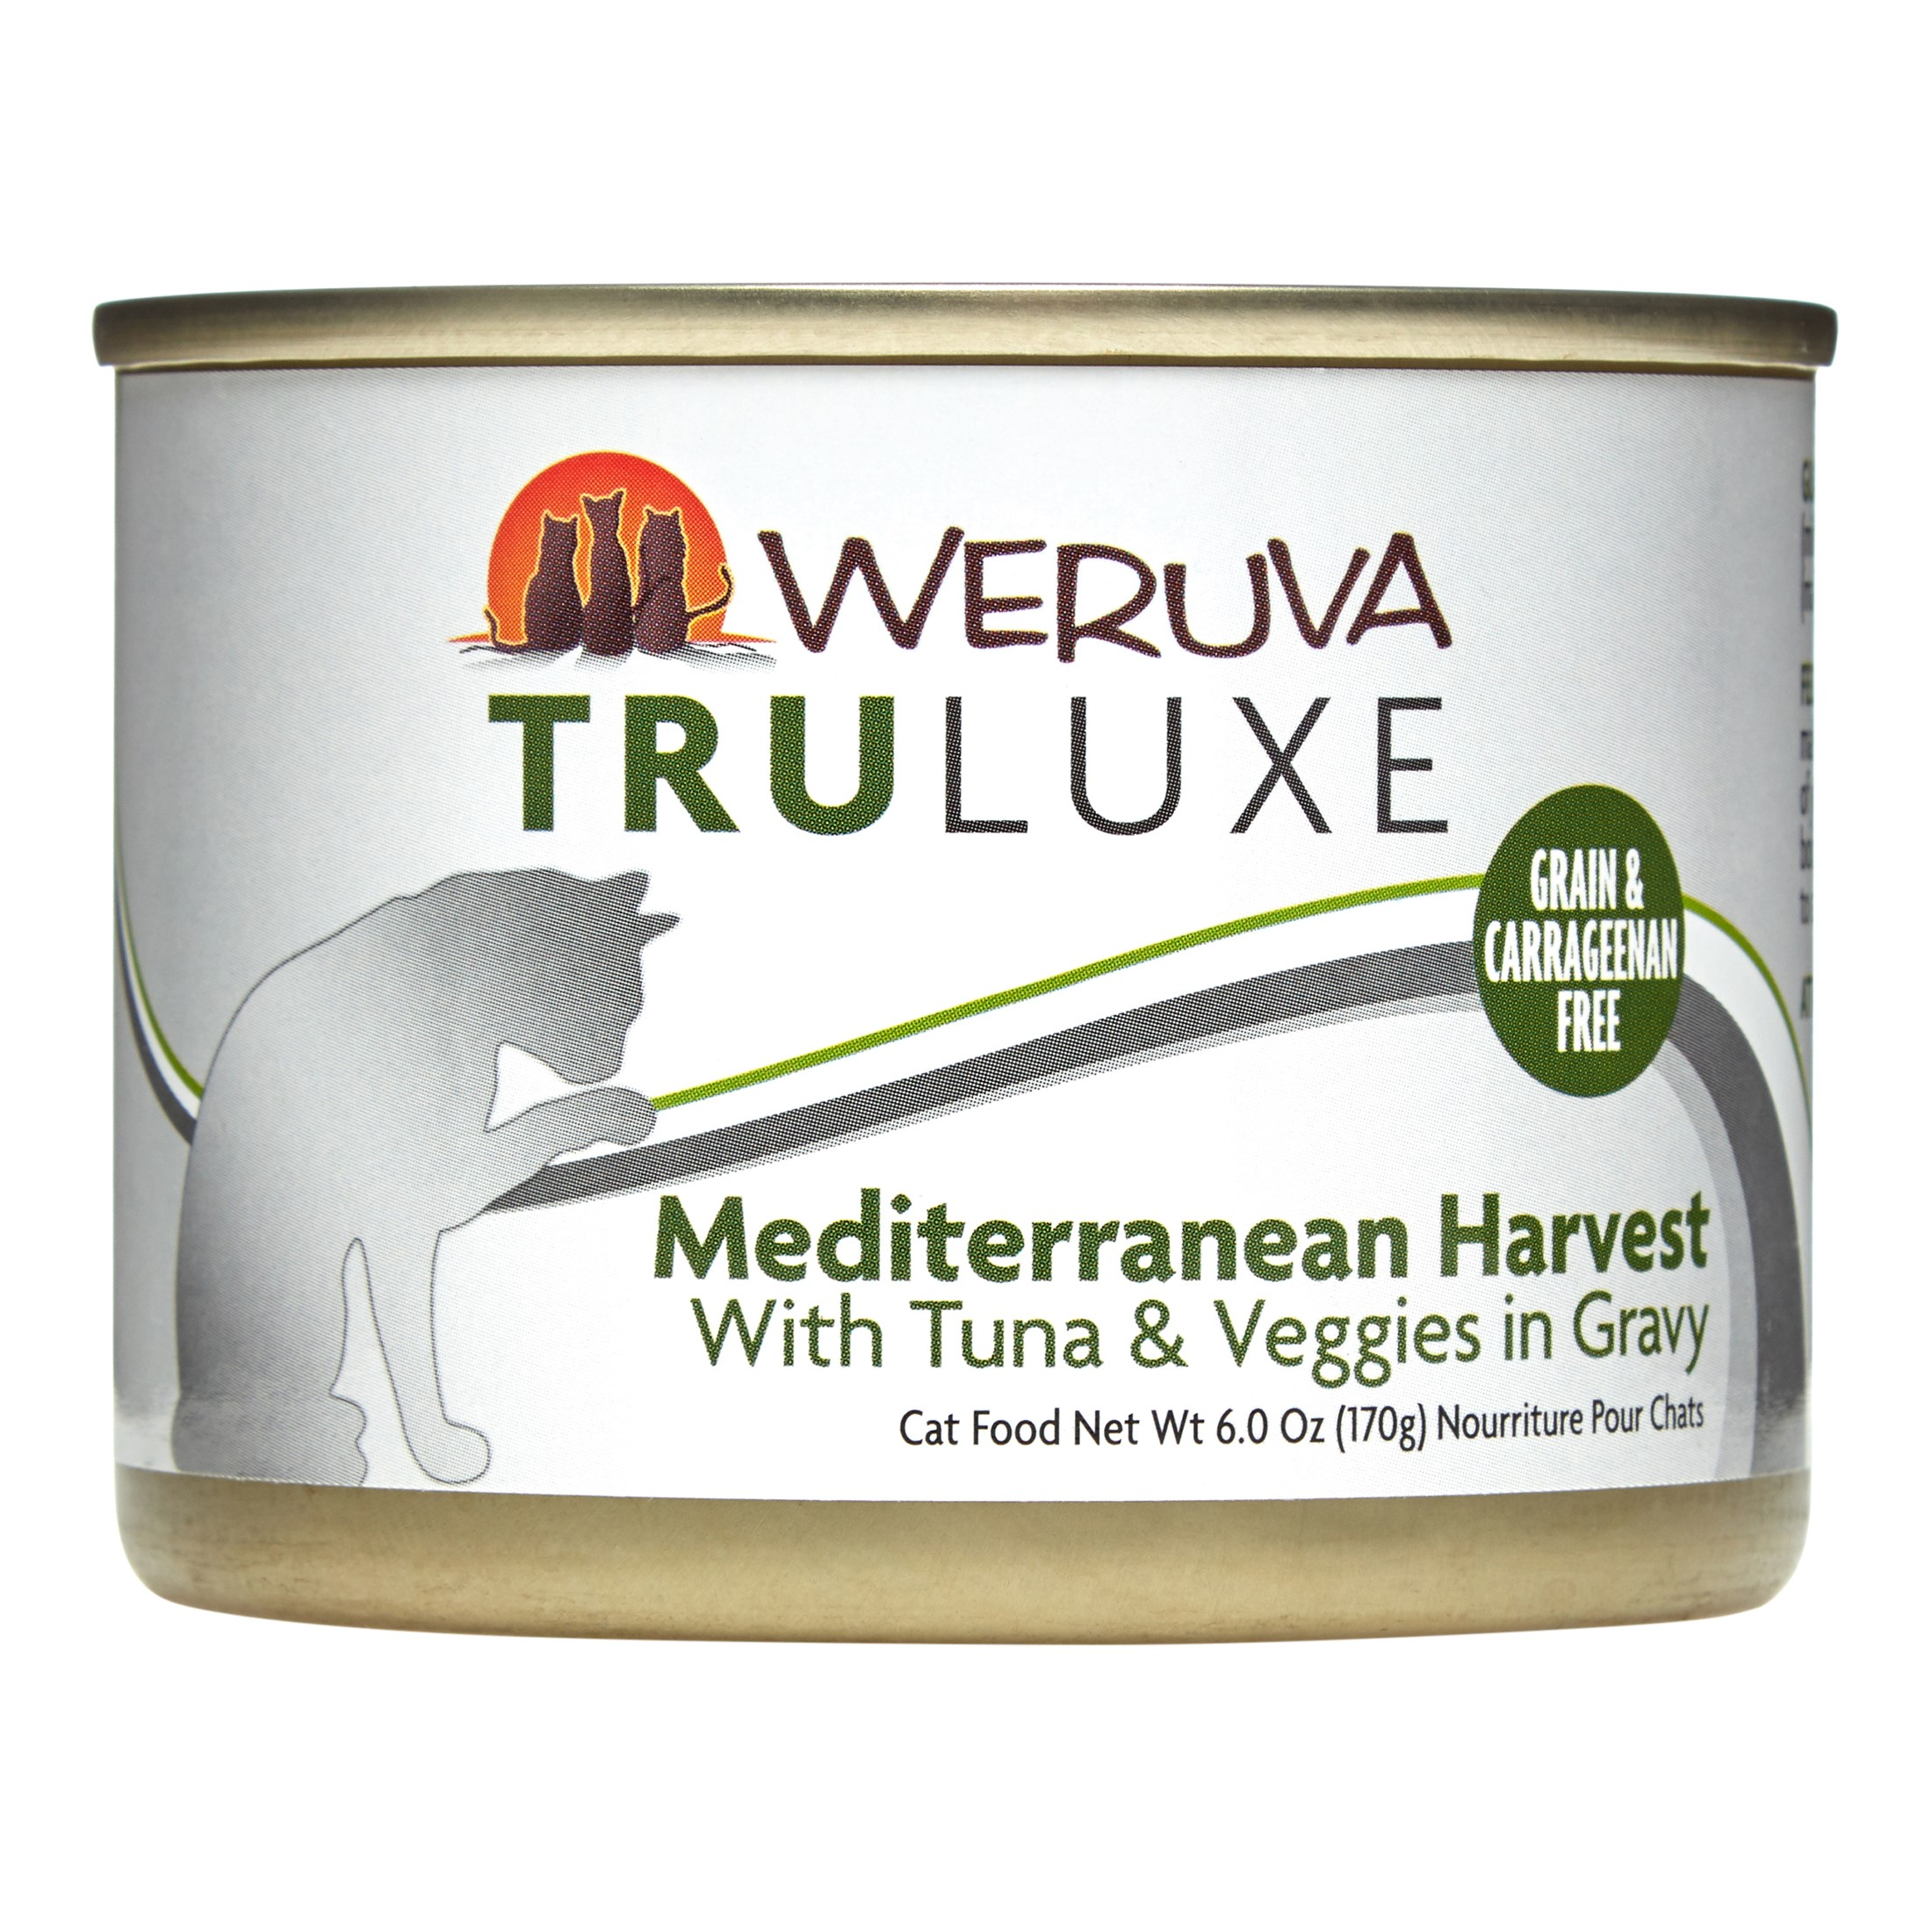 Weruva TruLuxe Grain-Free Mediterranean Harvest with Tuna & Veggies Wet Cat Food, 6 Oz